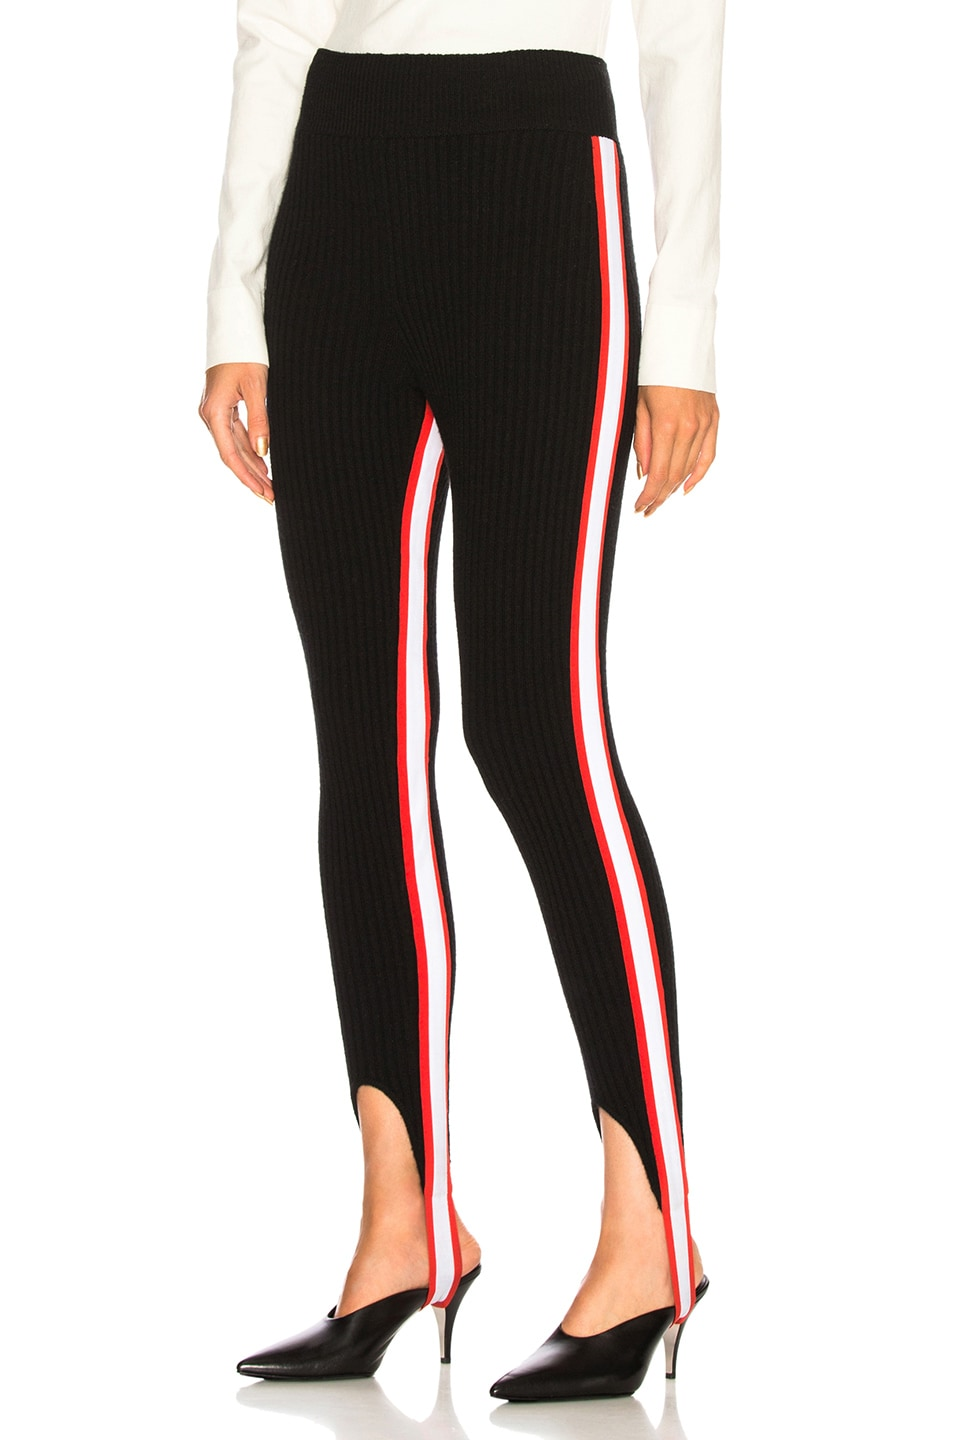 Image 1 of CALVIN KLEIN 205W39NYC Side Stripe Ribbed Stirrup Leggings in Black, Red & White